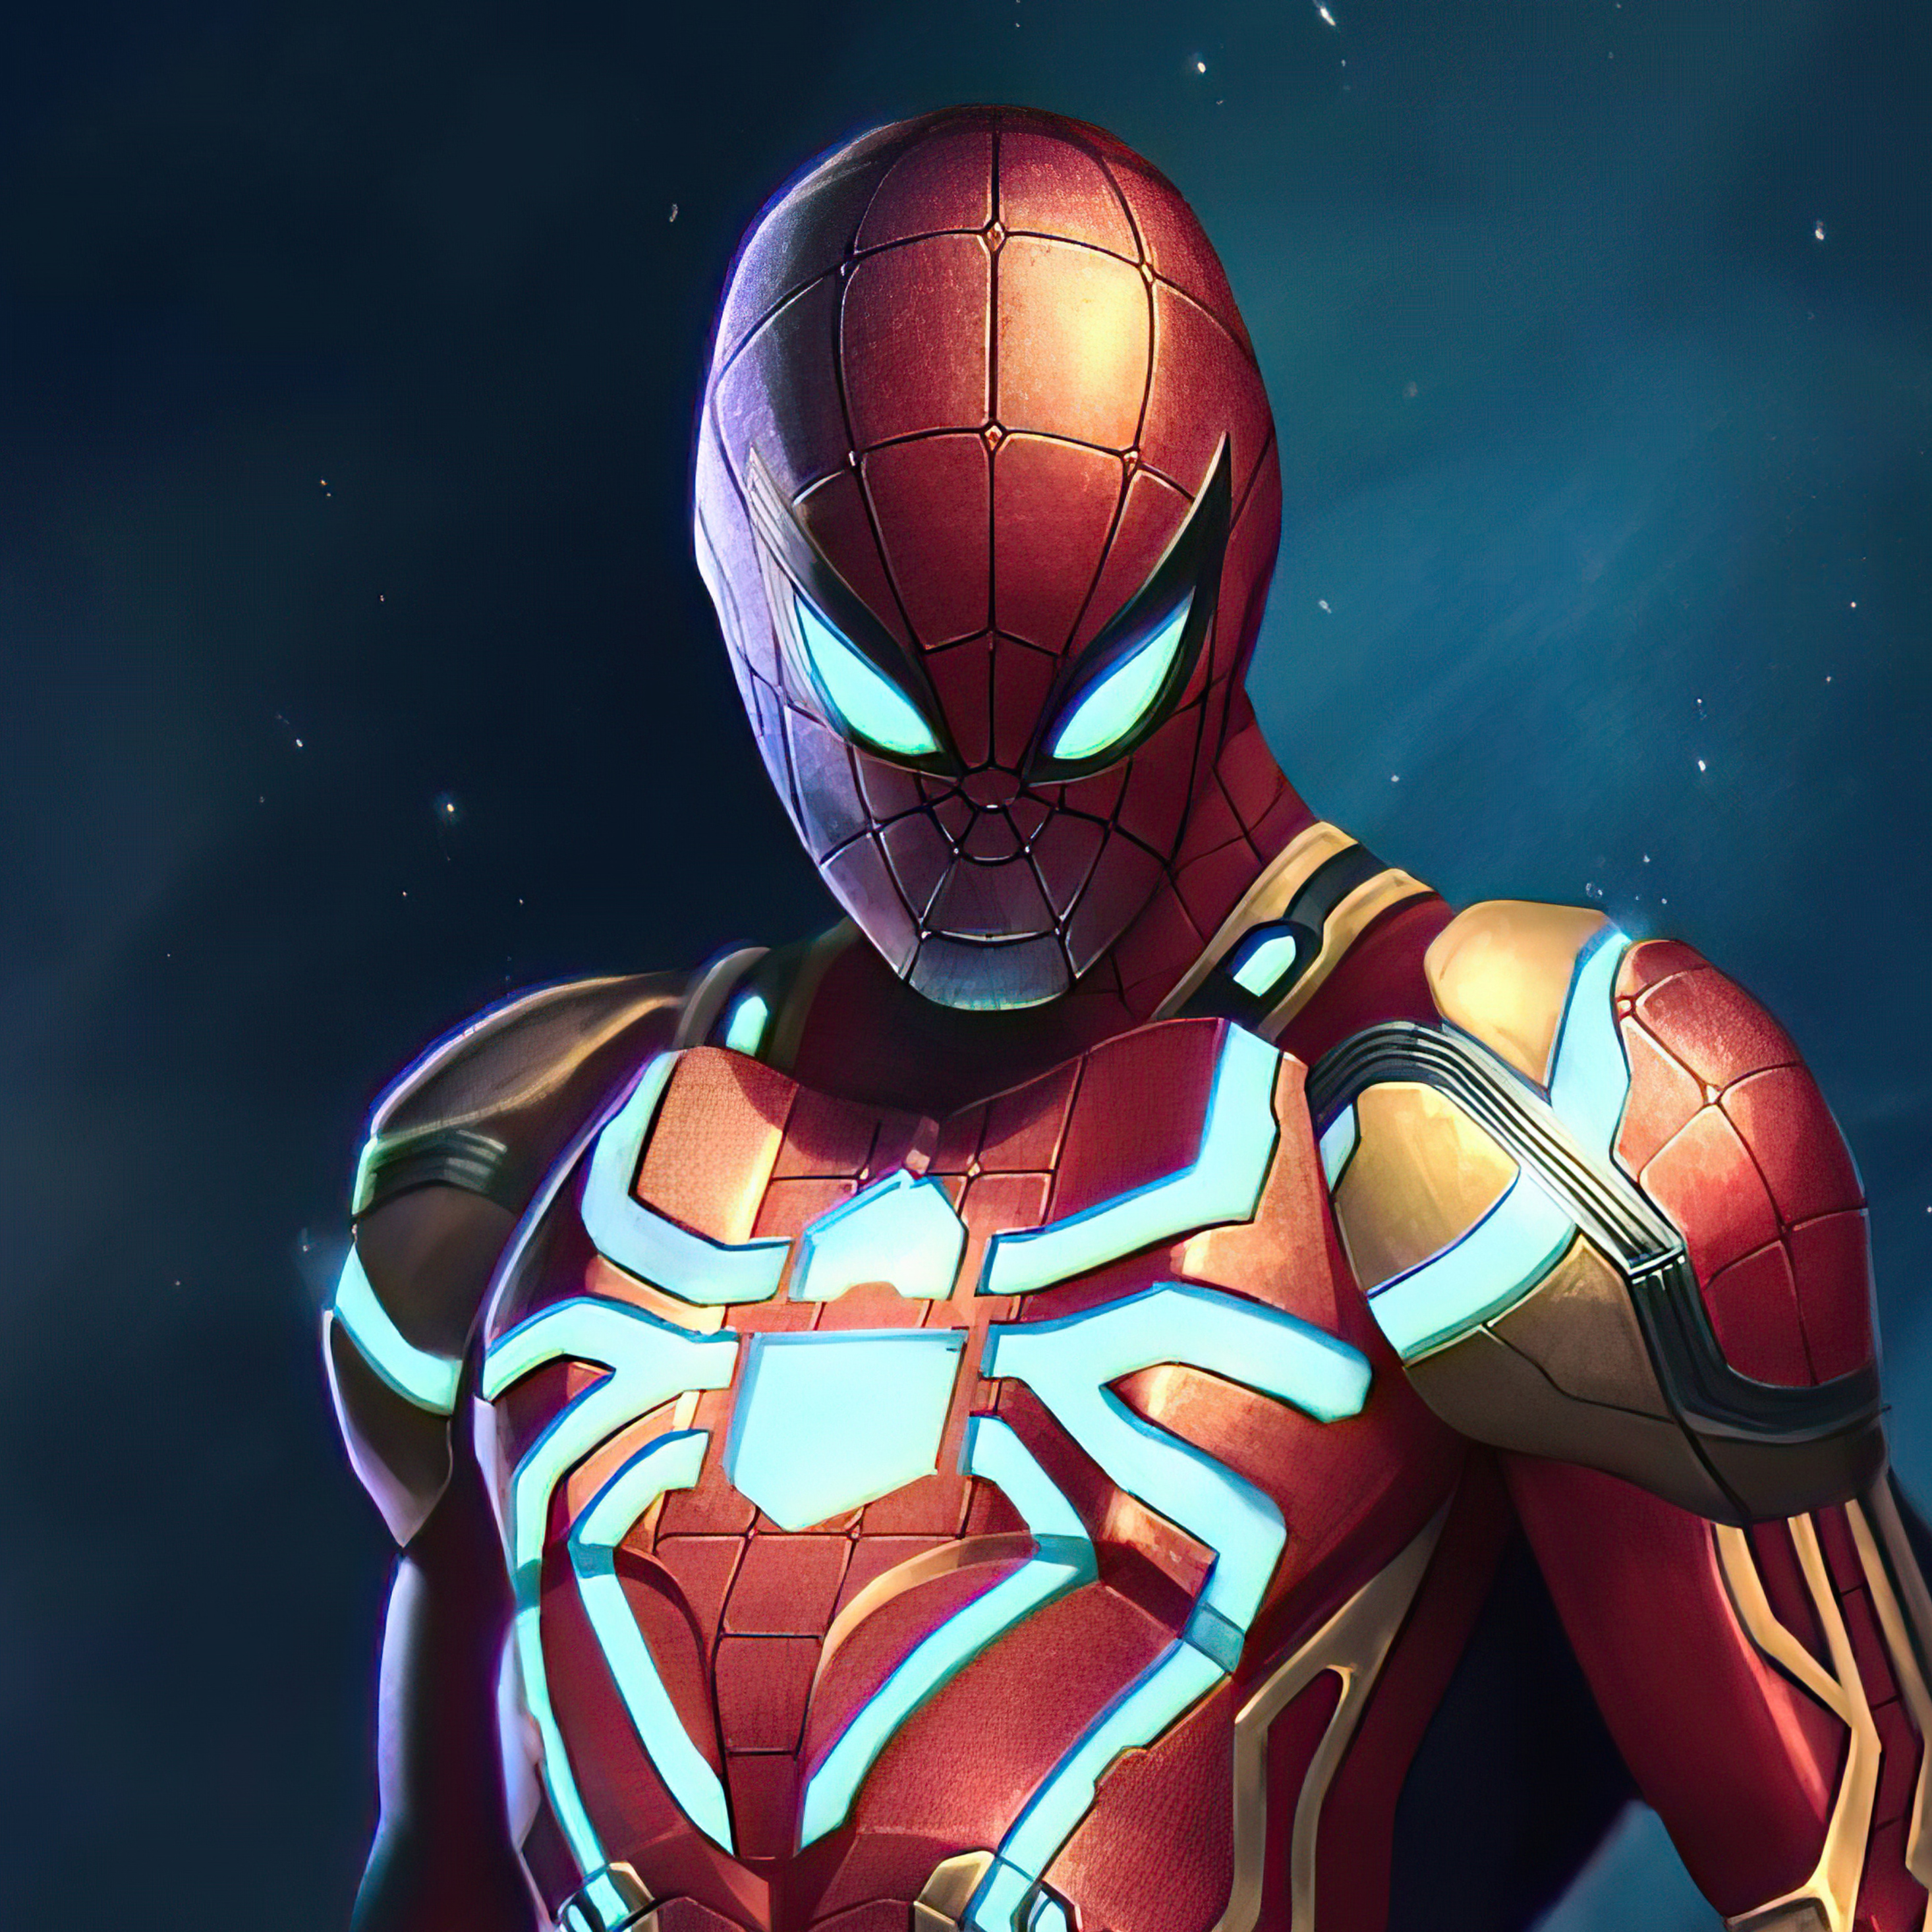 spider-man-new-armor-4k-wc.jpg